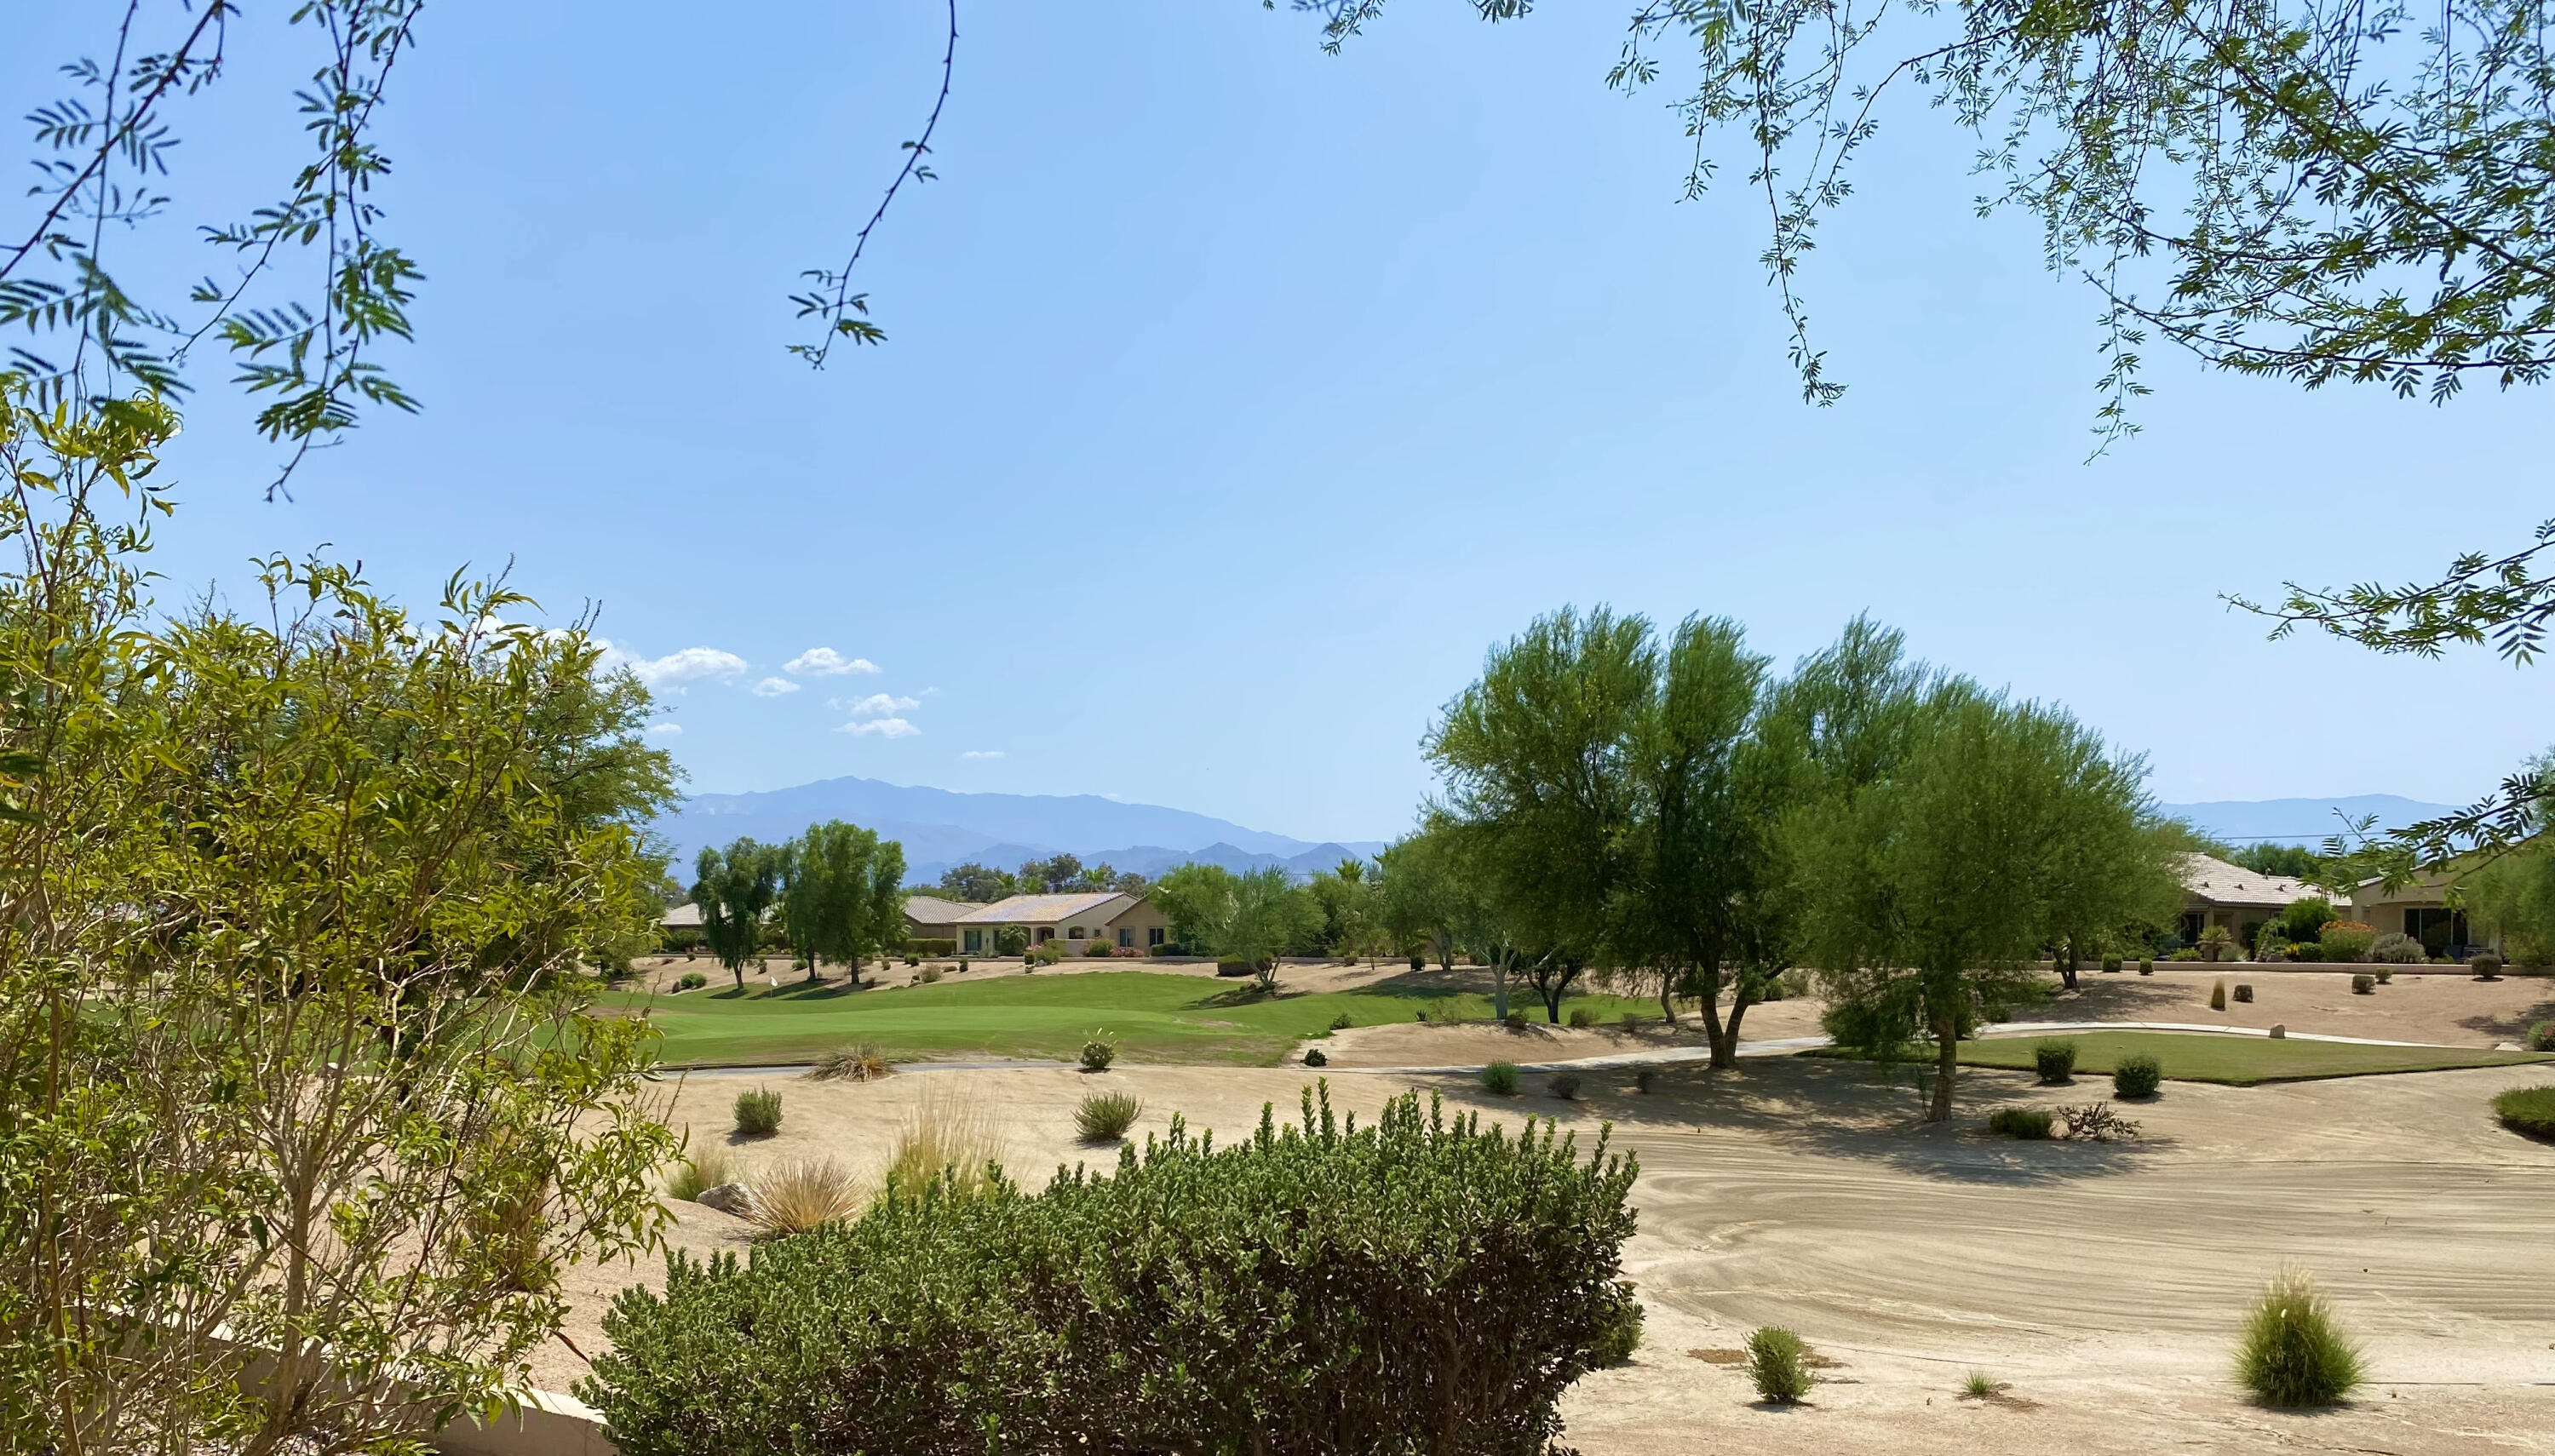 Located on the North course in Phase 3 of Sun City Shadow Hills, a 55+ community, is this popular Avalino floor plan featuring stunning golf course and mountain views, 2 bedrooms, 2 baths and a den/office.  High ceilings and open floor plan.  Beautiful wood look ceramic tile in the Great Room.  Chef's kitchen with center island with bar seating. Lots of counter area and pantry.  Dining area faces golf course.  Custom window coverings throughout.  Custom paint.  Covered and extended patio area in back yard to enjoy the views and entertain family and friends. The Master suite features dual vanities, separate soaking tub and shower and custom walk-in closet.  Den/office is a nice retreat area.  Separate laundry room with cabinets and sink.  Front door screen.  Garage features epoxy coated floor, built-in storage, and evaporative cooler.  Beautifully furnished and decorated.  Furnishings included outside of escrow, per inventory, at no value. High speed Internet included in monthly HOA fee.